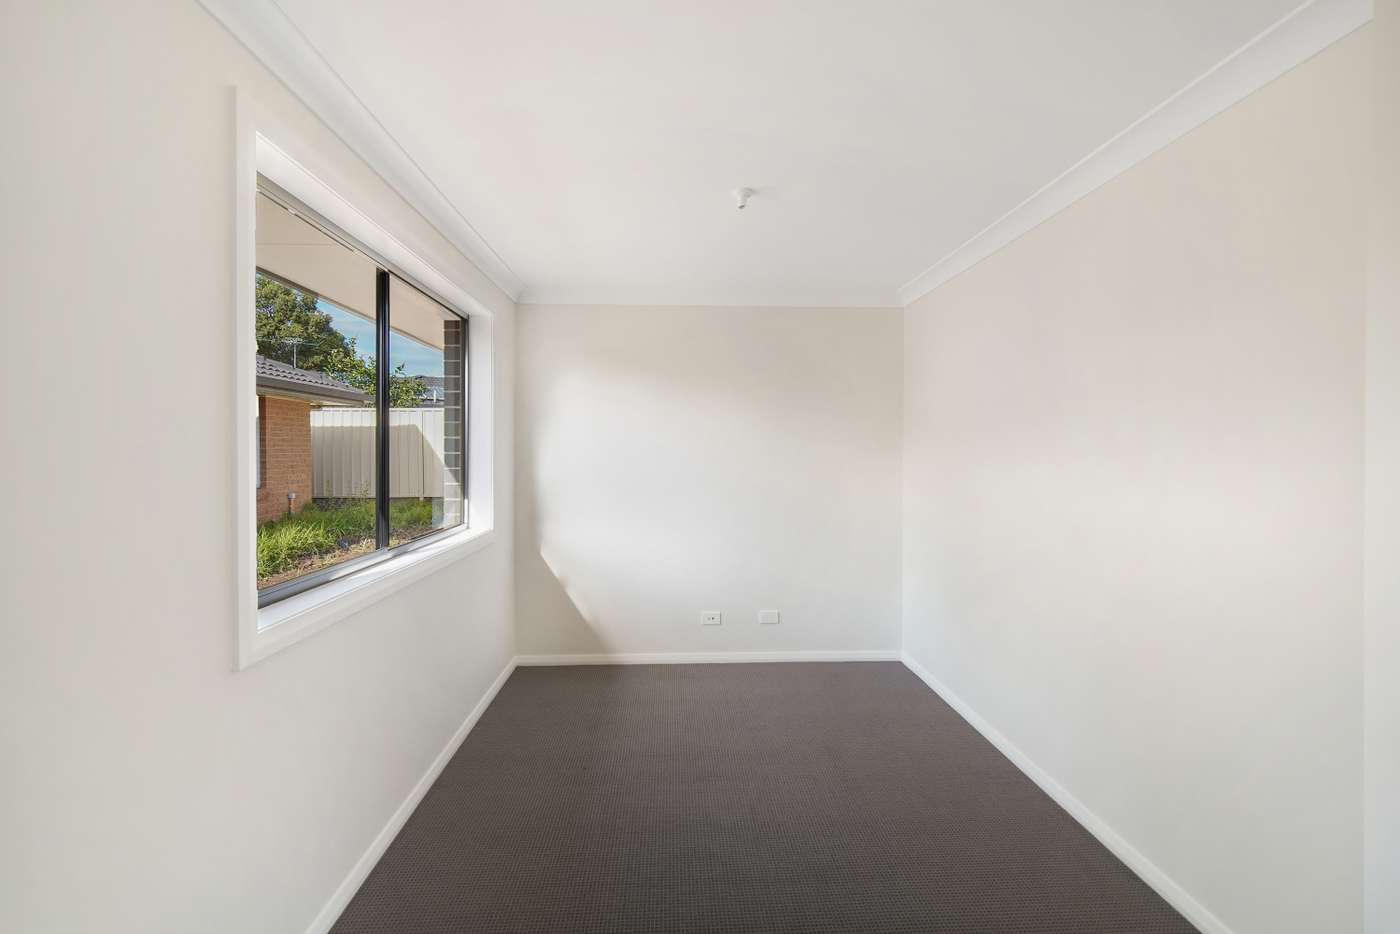 Seventh view of Homely house listing, 4a Henrietta Drv, Narellan Vale NSW 2567